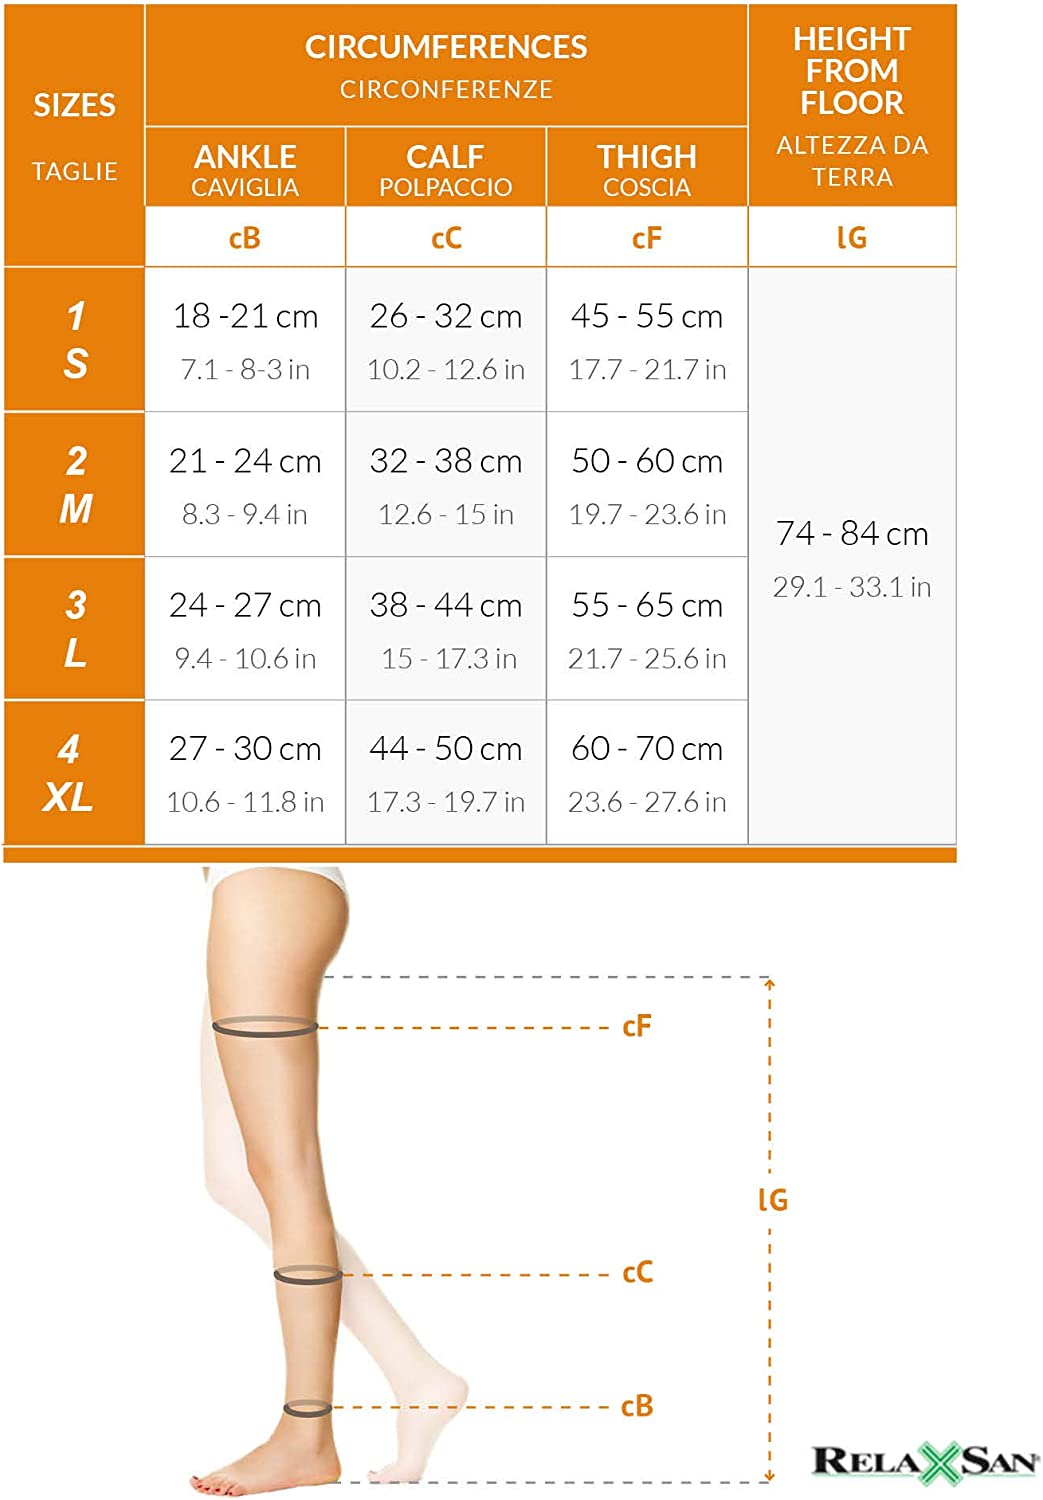 RelaxSan Antiembolism M1370A Open-toe anti-embolism hold up stockings K2-25-32 mmHg